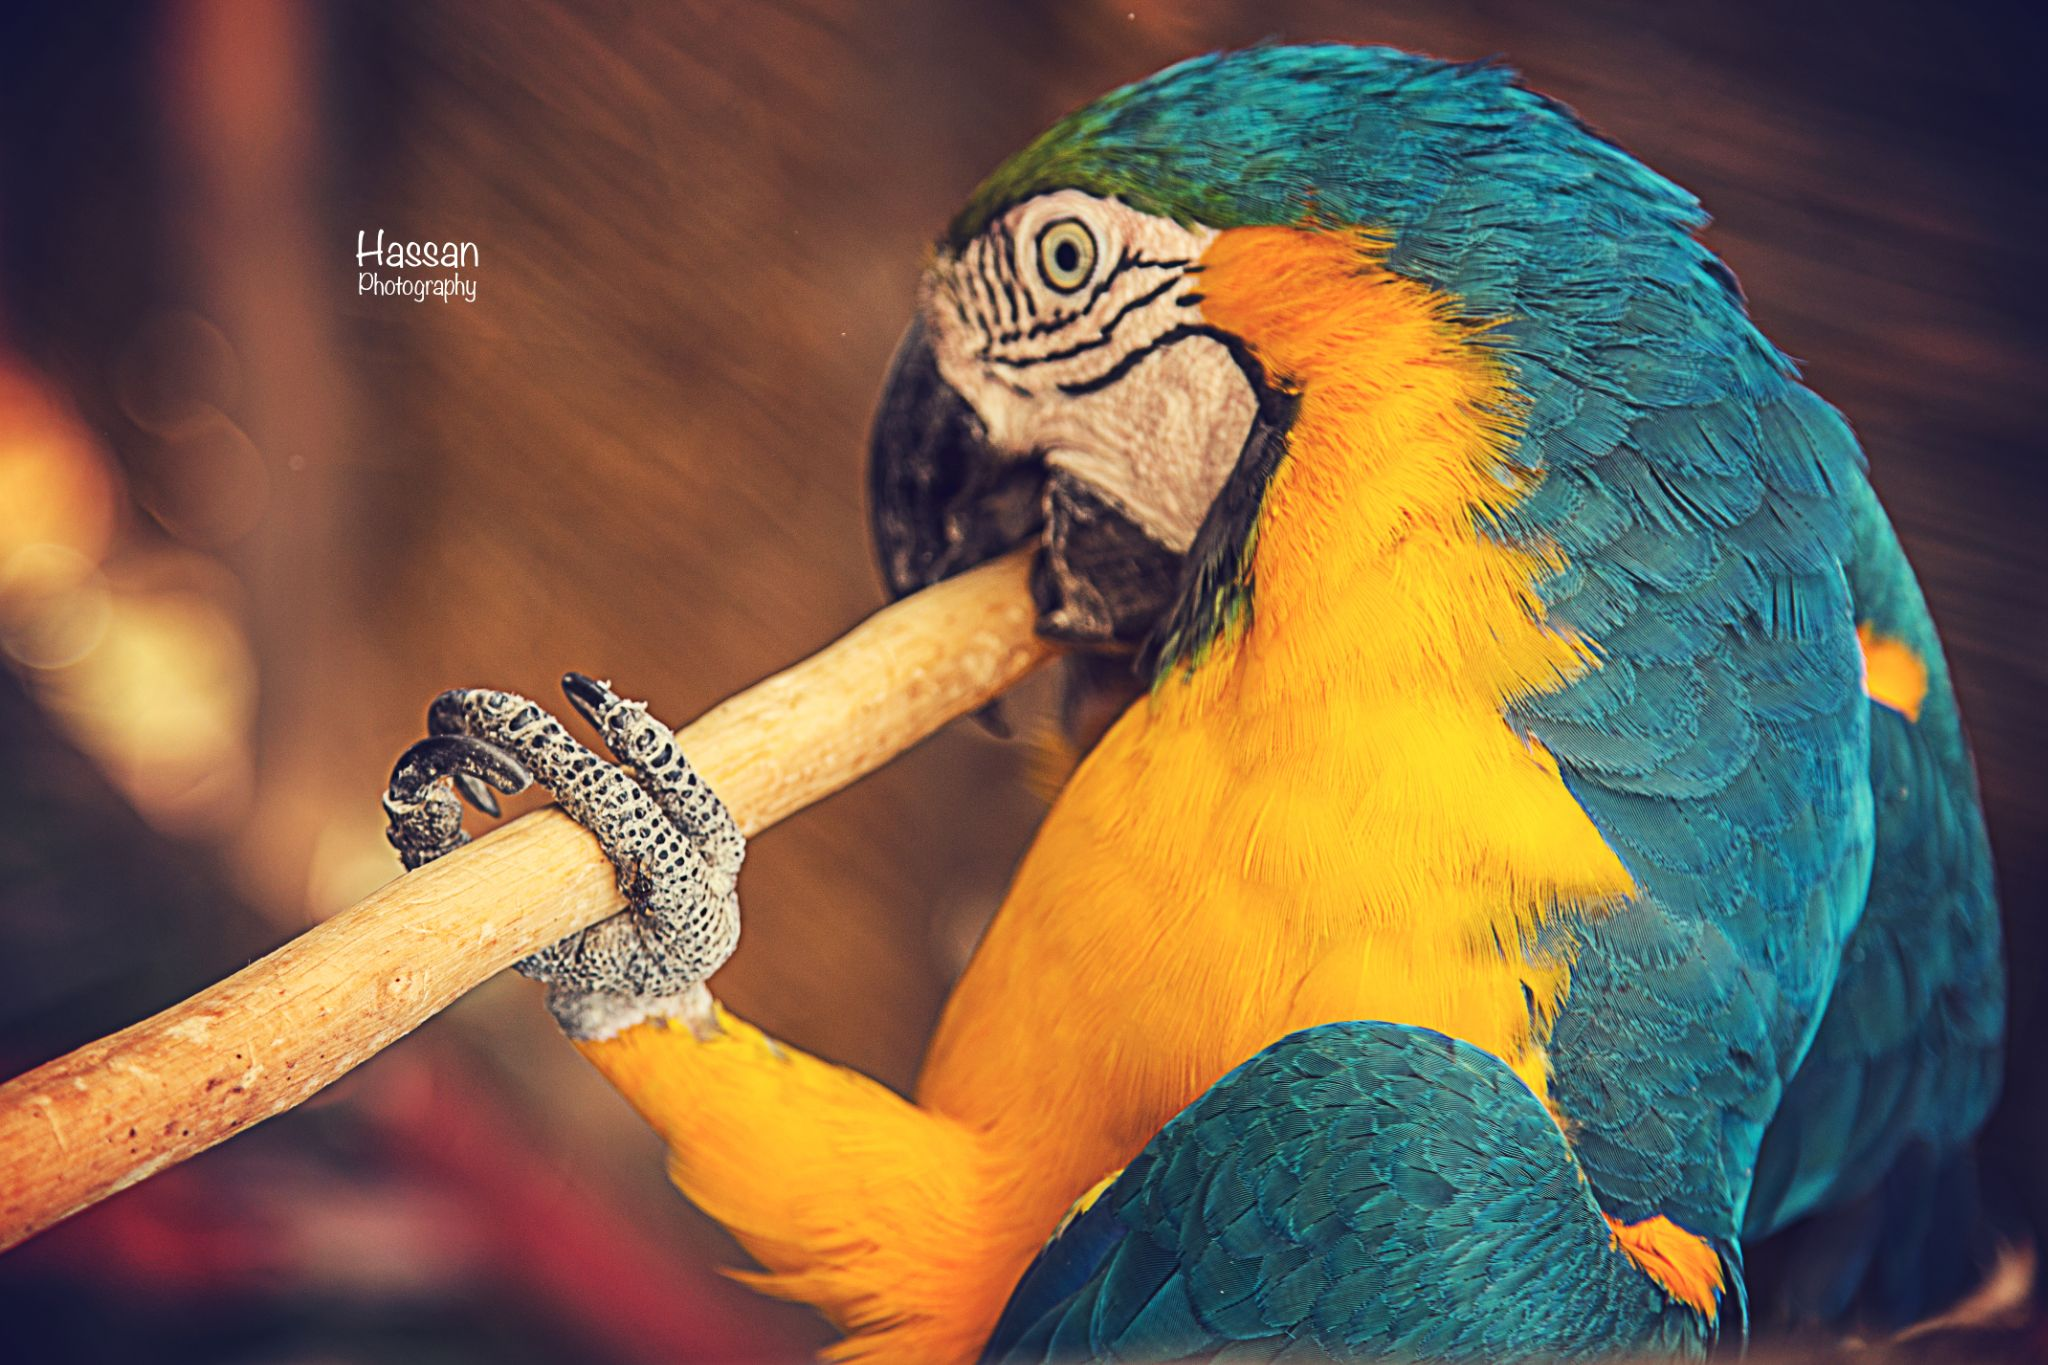 The flute by Hassan Elbarbary